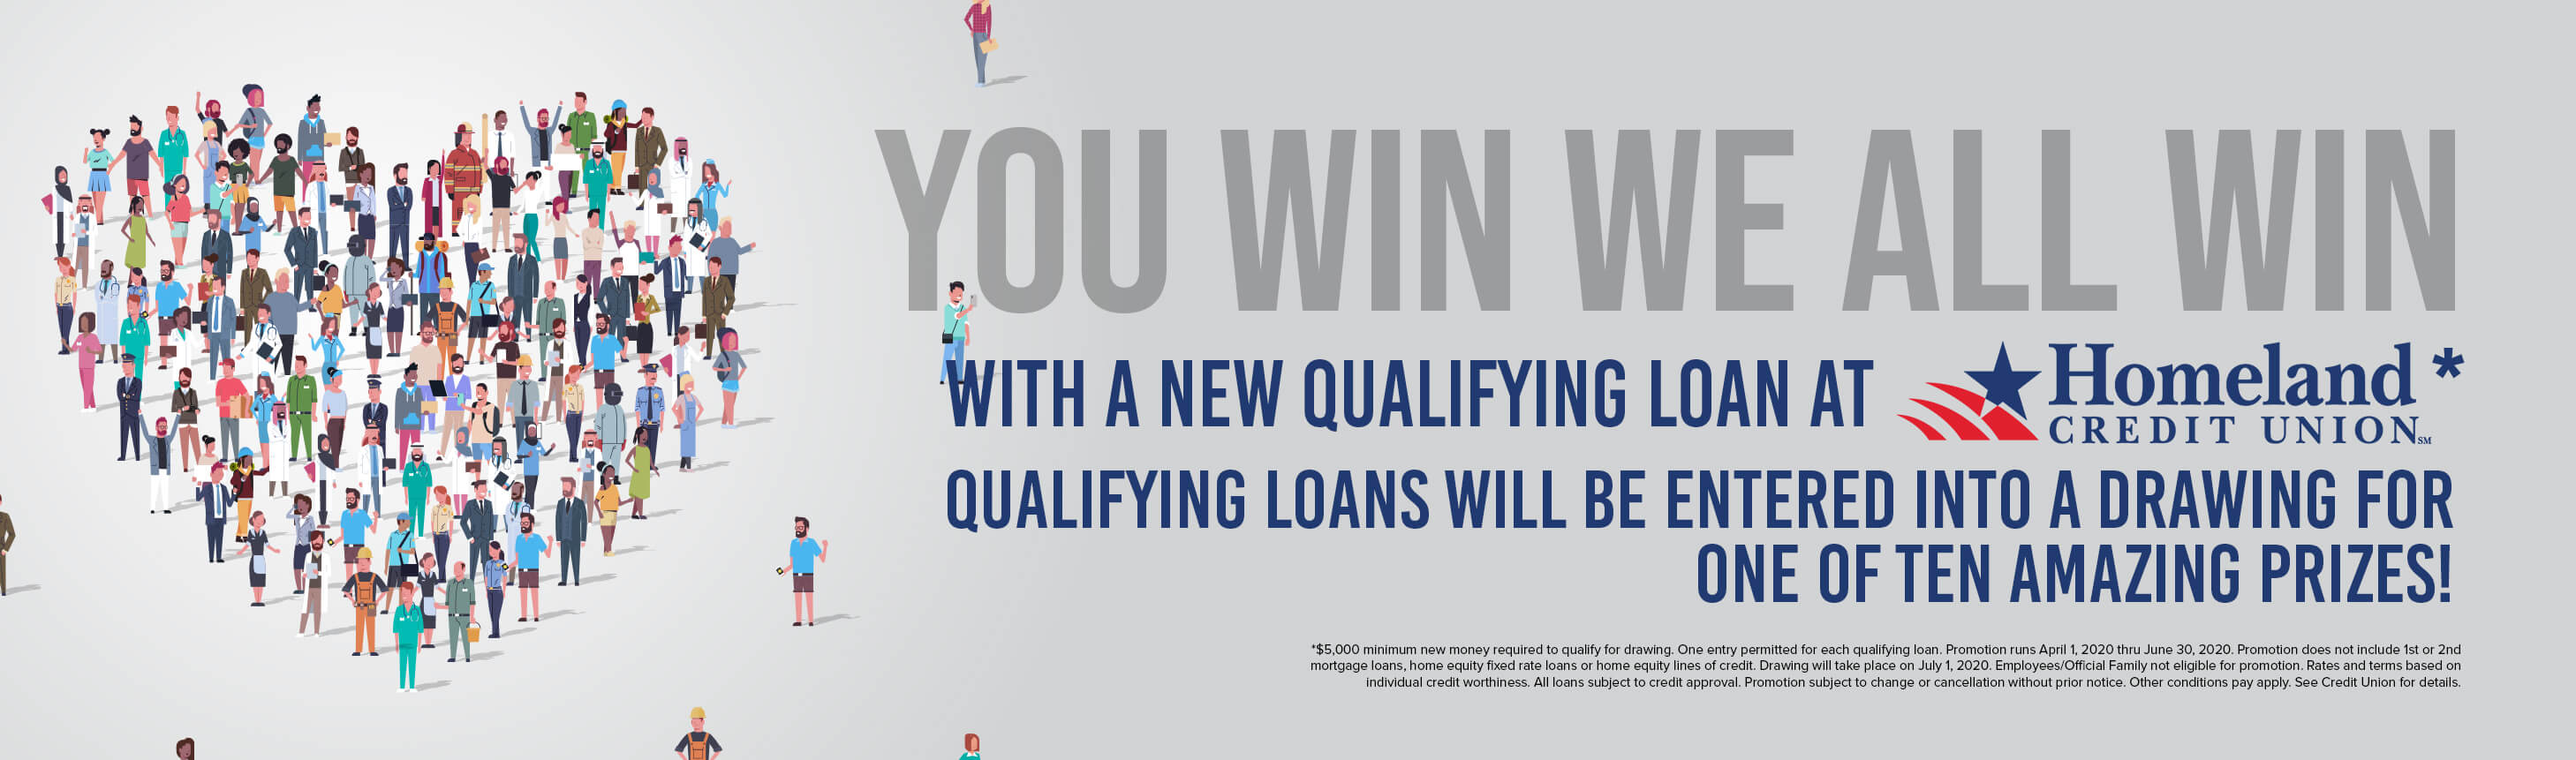 You win we all win with a new loan at Homeland Credit Union.* Qualifying loans will be entered into a drawing for one of ten amazing prizes! Including a $1000 downtown Chillicothe shopping spree. *$5,000 minimum new money required to qualify for drawing. One entry permitted for each qualifying loan. Promotion runs April 1, 2020 thru June 30, 2020. Promotion does not include 1st or 2nd mortgage loans, home equity fixed rate loans or home equity lines of credit. Drawing will take place on July 1, 2020. Employees/Official Family not eligible for promotion. Rates and terms based on individual credit worthiness. All loans subject to credit approval. Promotion subject to change or cancellation without prior notice. Other conditions pay apply. See Credit Union for details.